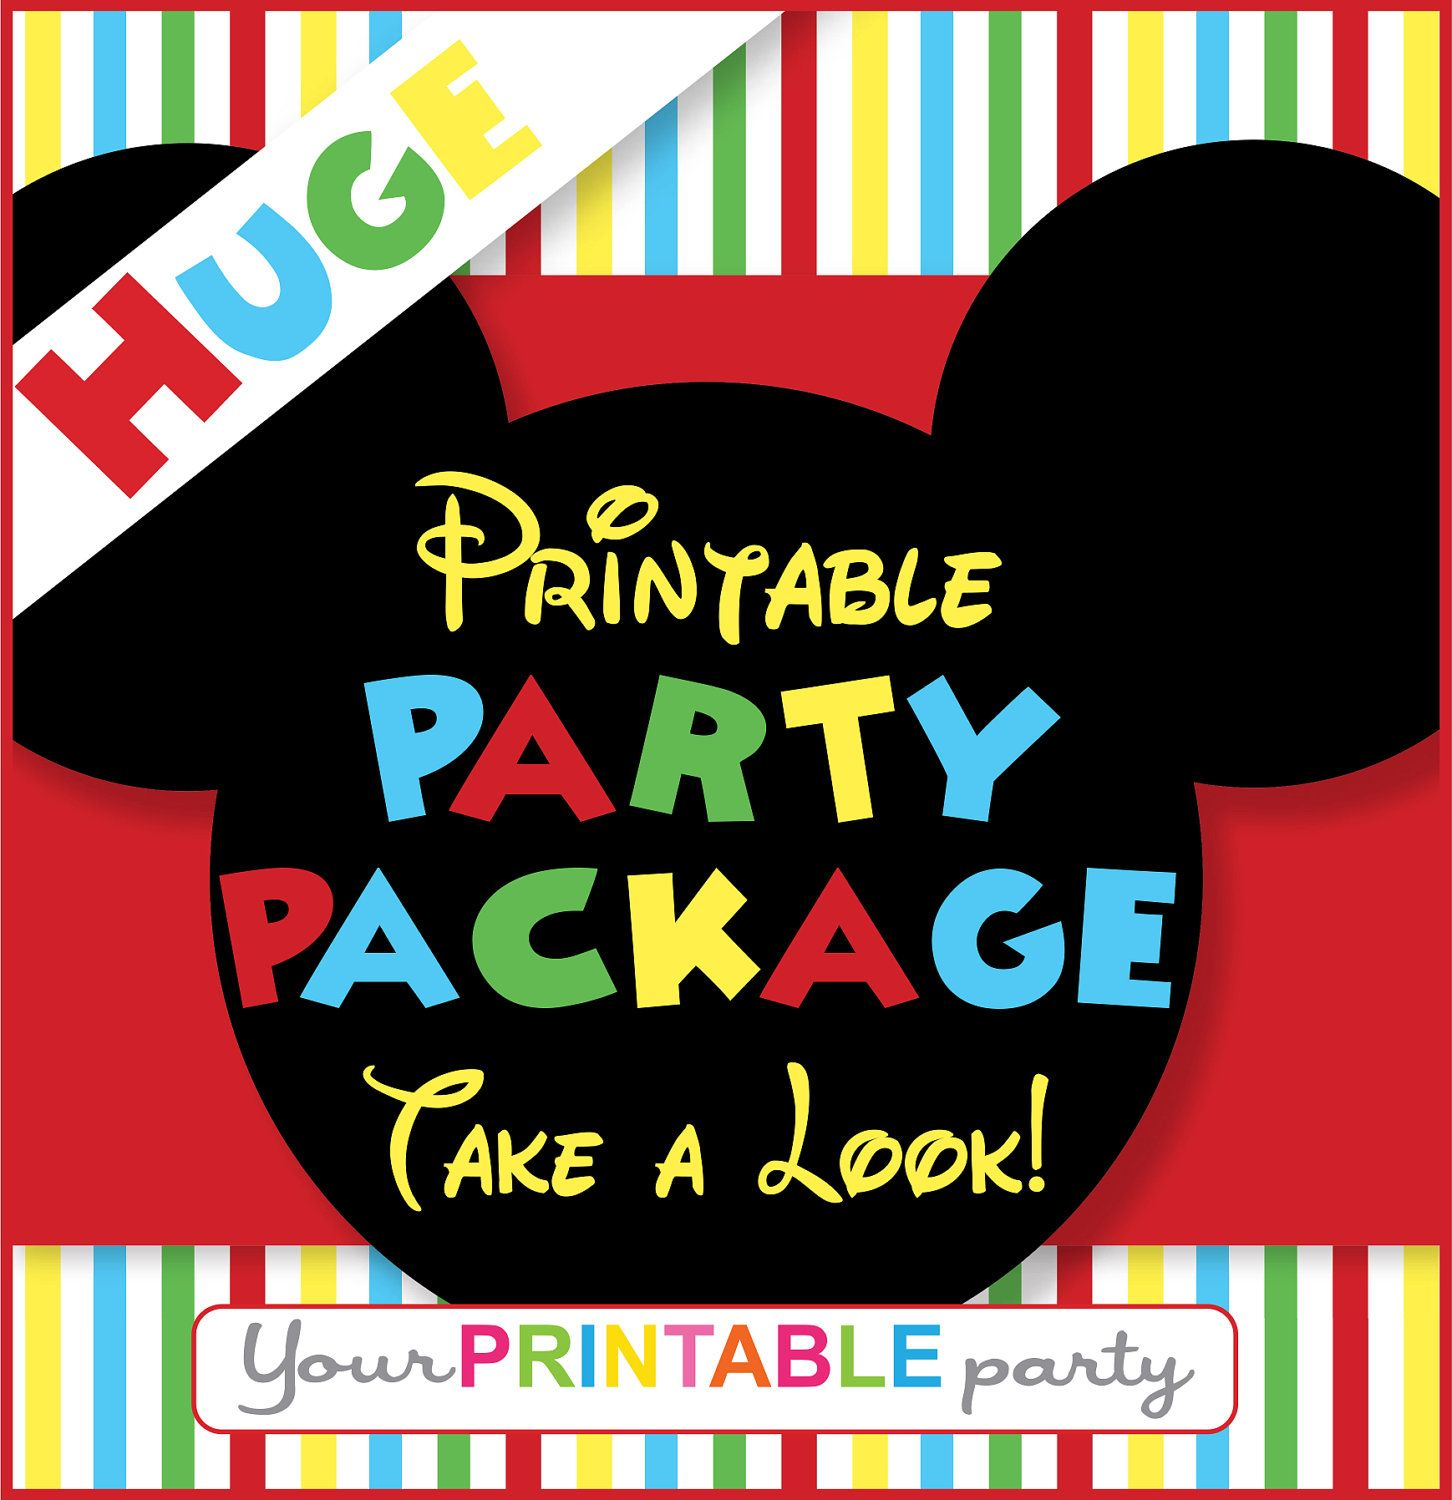 Mickey mouse party package personalized printable yes im mickey mouse party package personalized printable filmwisefo Choice Image